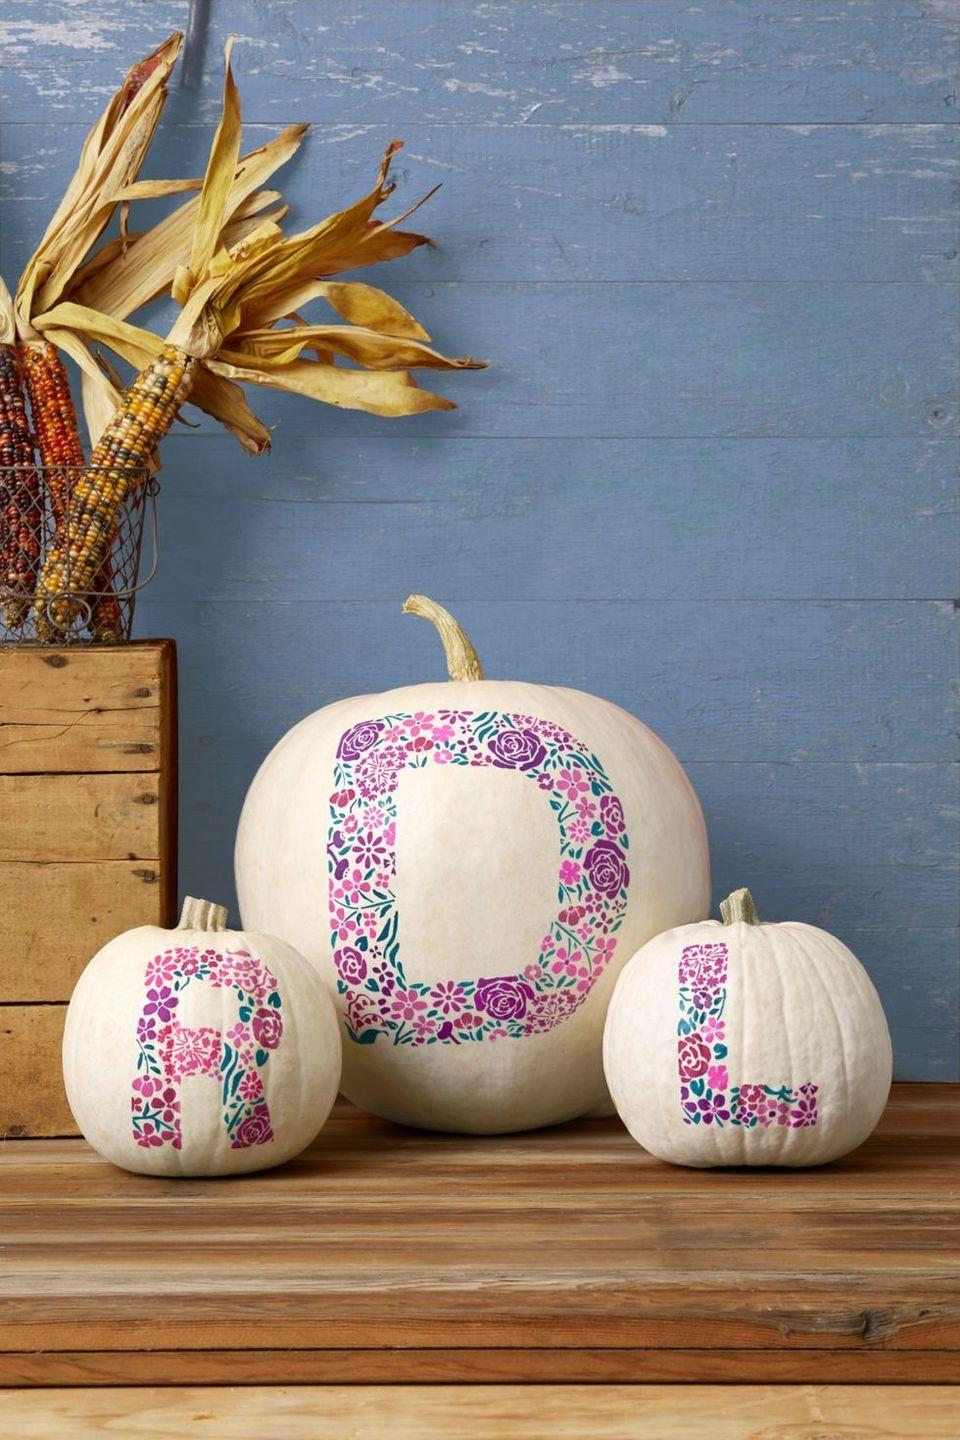 """<p>Have your pumpkin be a reflection of your personal style by painting it with a fun floral monogram. </p><p><strong><em>Get the tutorial at <a href=""""https://www.thepioneerwoman.com/holidays-celebrations/g32223401/pumpkin-decorating-ideas/"""" rel=""""nofollow noopener"""" target=""""_blank"""" data-ylk=""""slk:The Pioneer Woman"""" class=""""link rapid-noclick-resp"""">The Pioneer Woman</a>. </em></strong> </p>"""